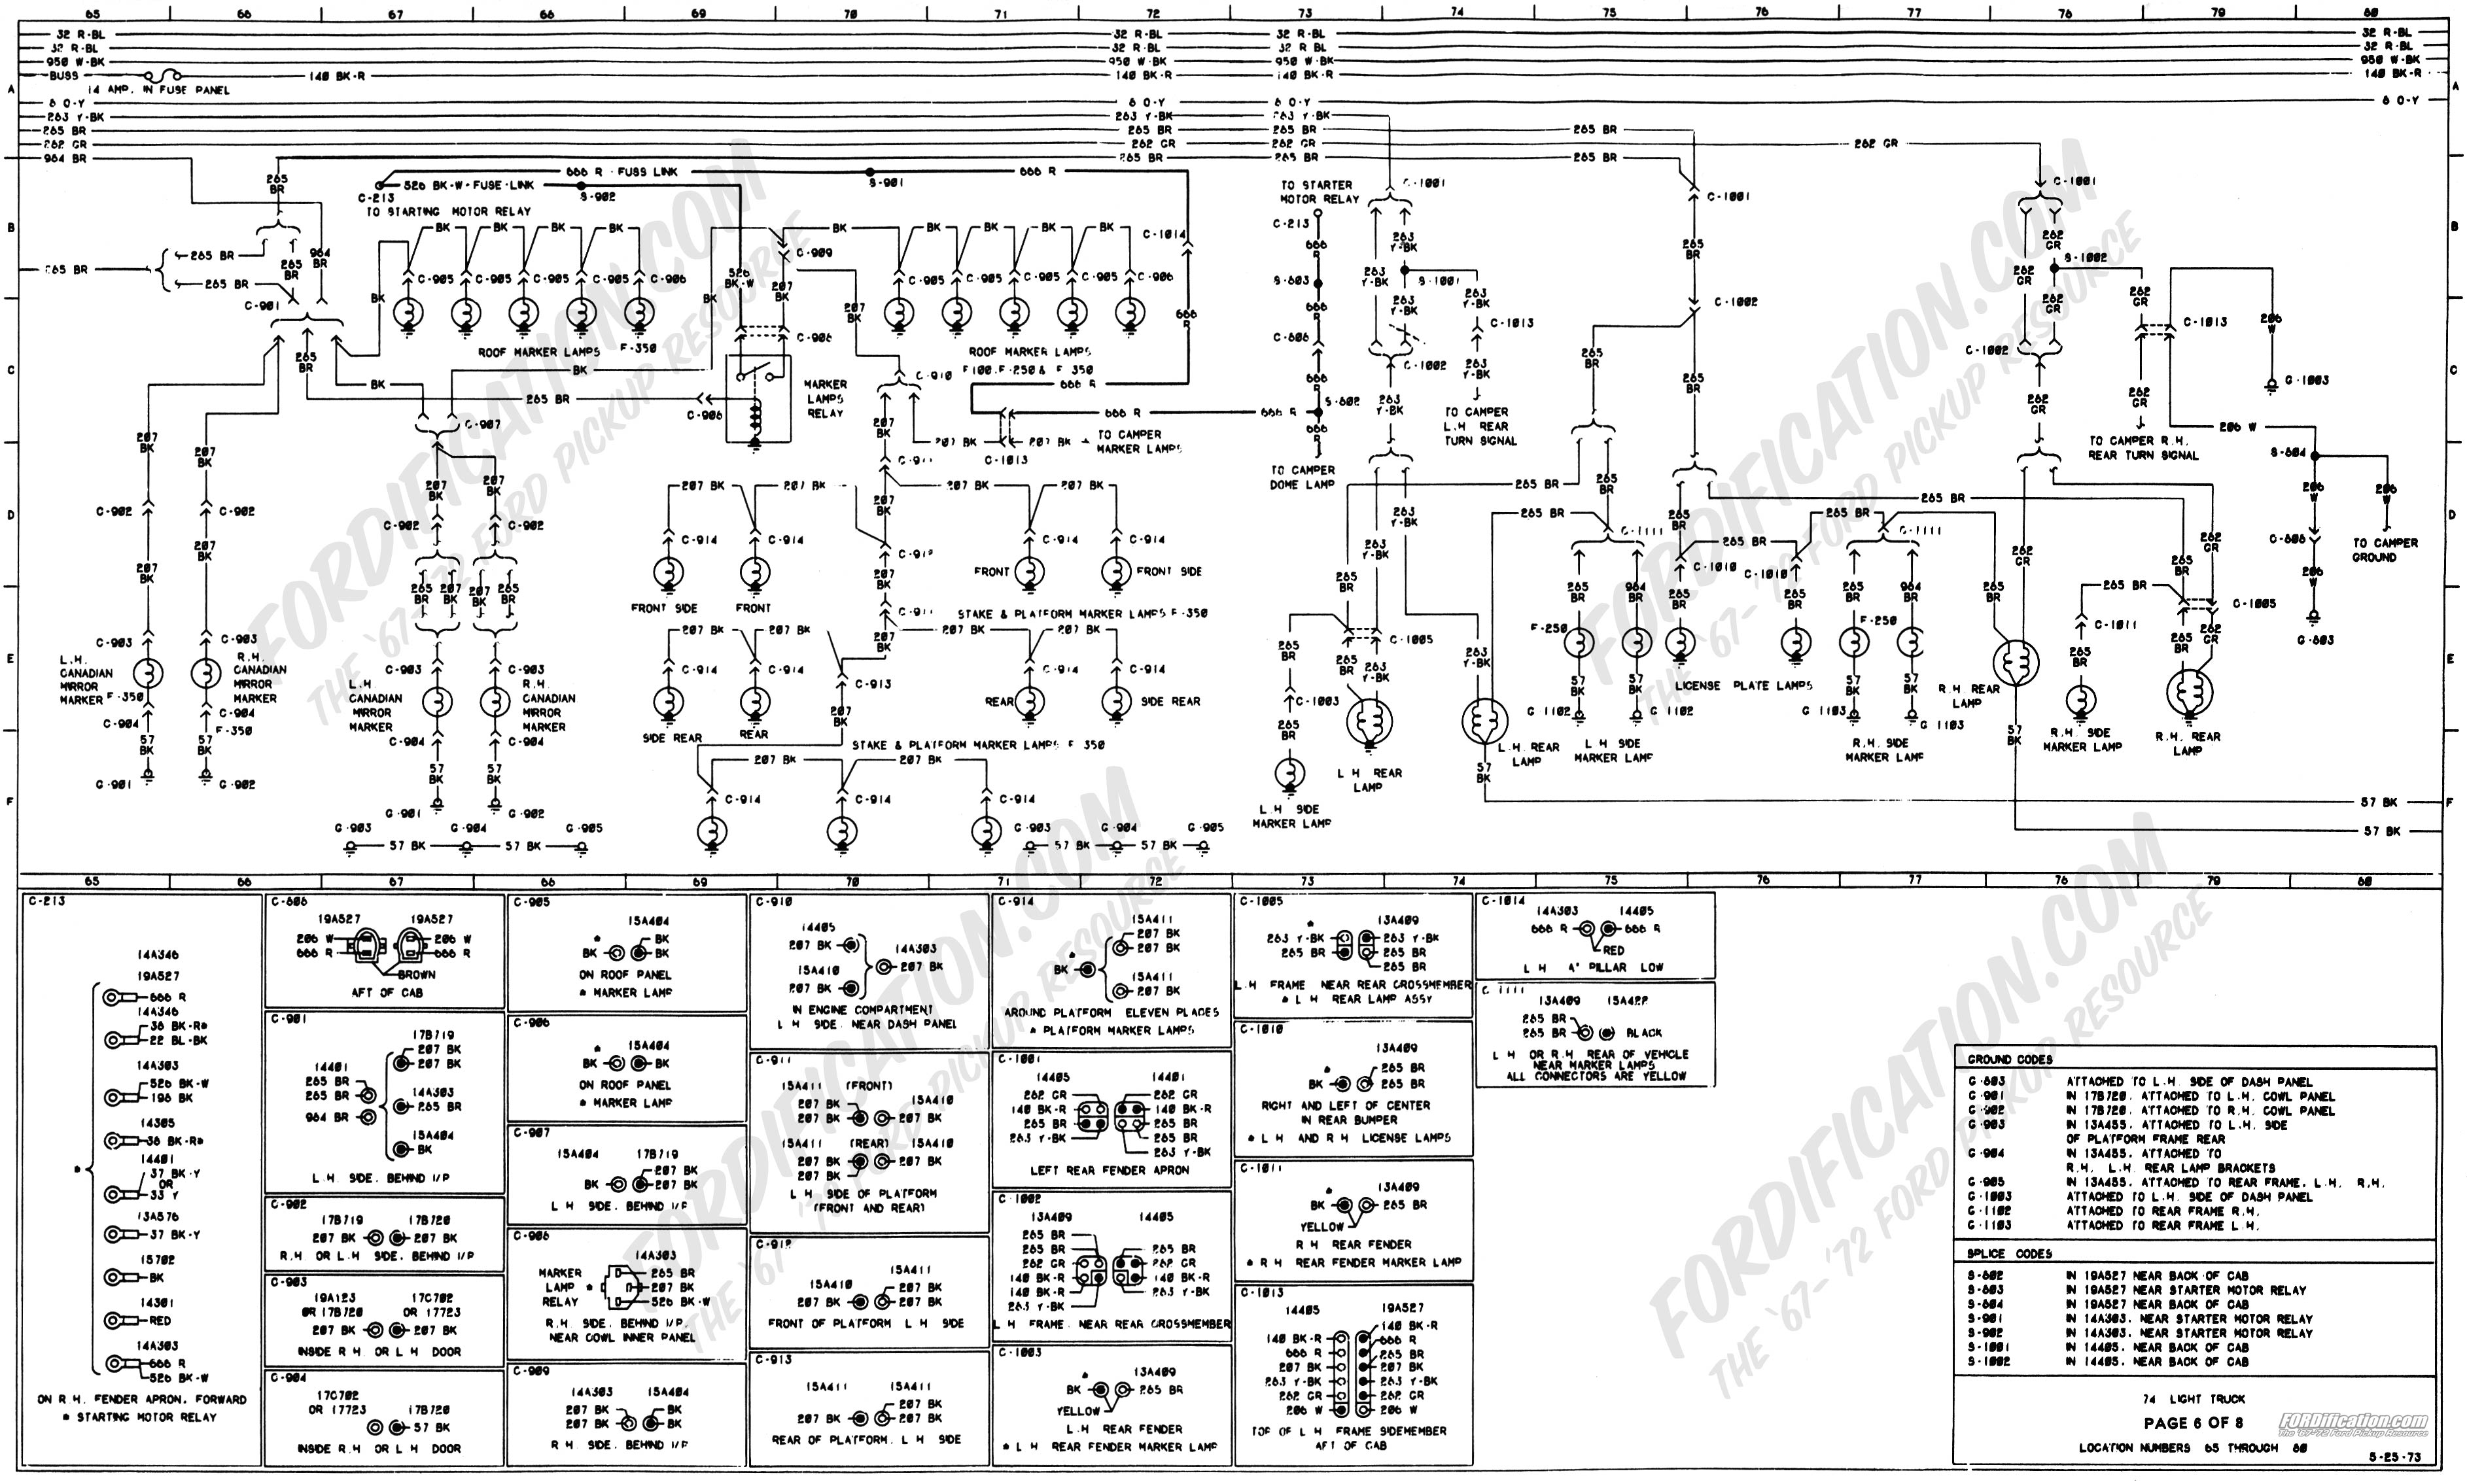 wiring_74master_6of8 1973 1979 ford truck wiring diagrams & schematics fordification net 1999 ford f350 wiring diagram at metegol.co